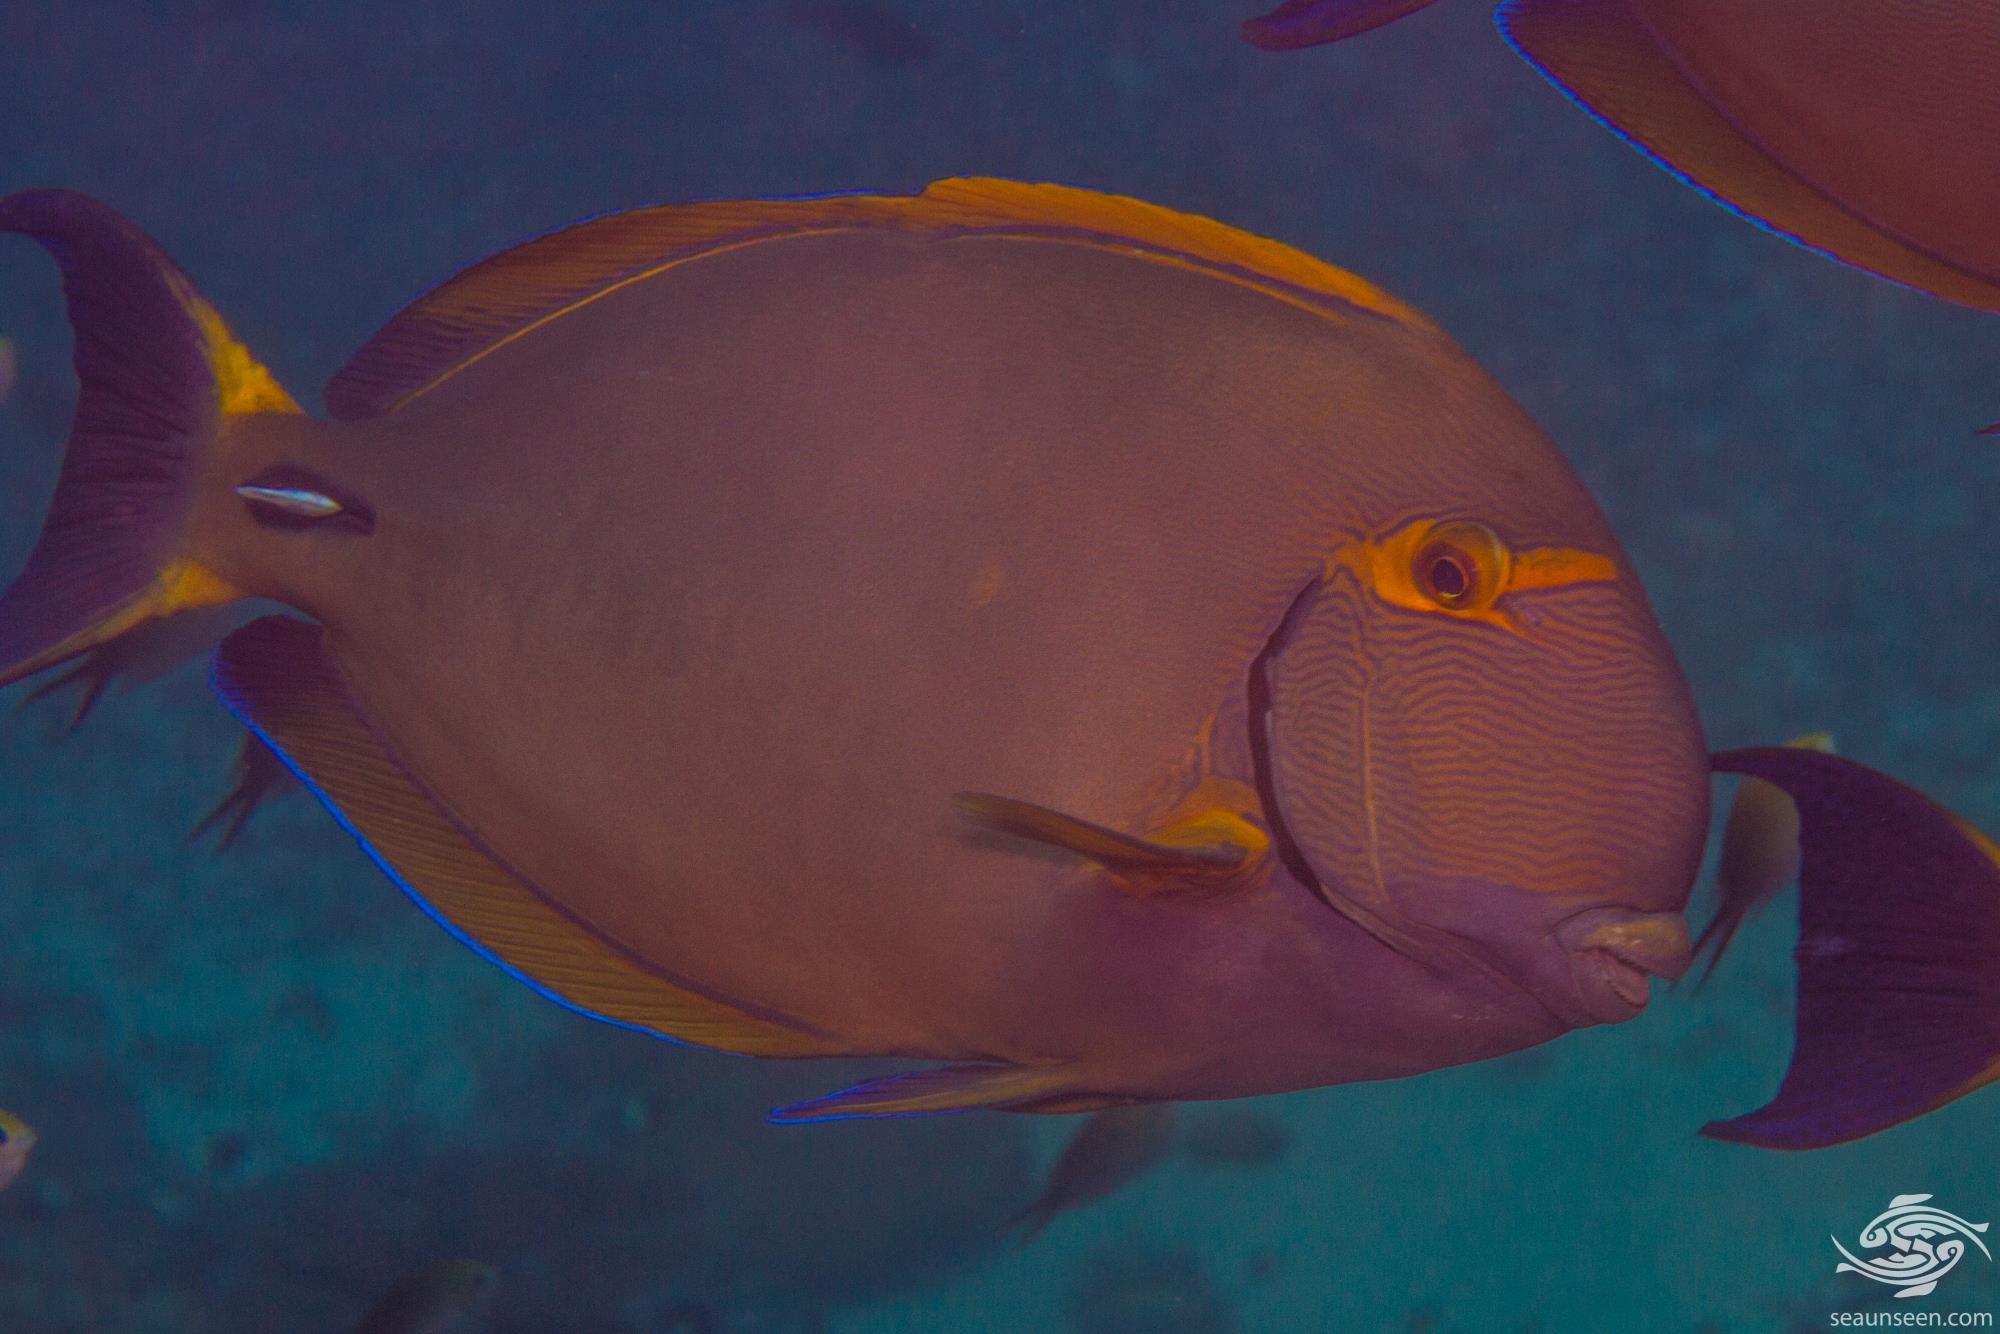 Eyestripe Surgeonfish (Acanthurus dussumieri) is also known as the Pencilled Surgeonfish, Dussumier's Surgeonfish, the Hawaiian Surgeonfish and the Ornate Surgeonfish.